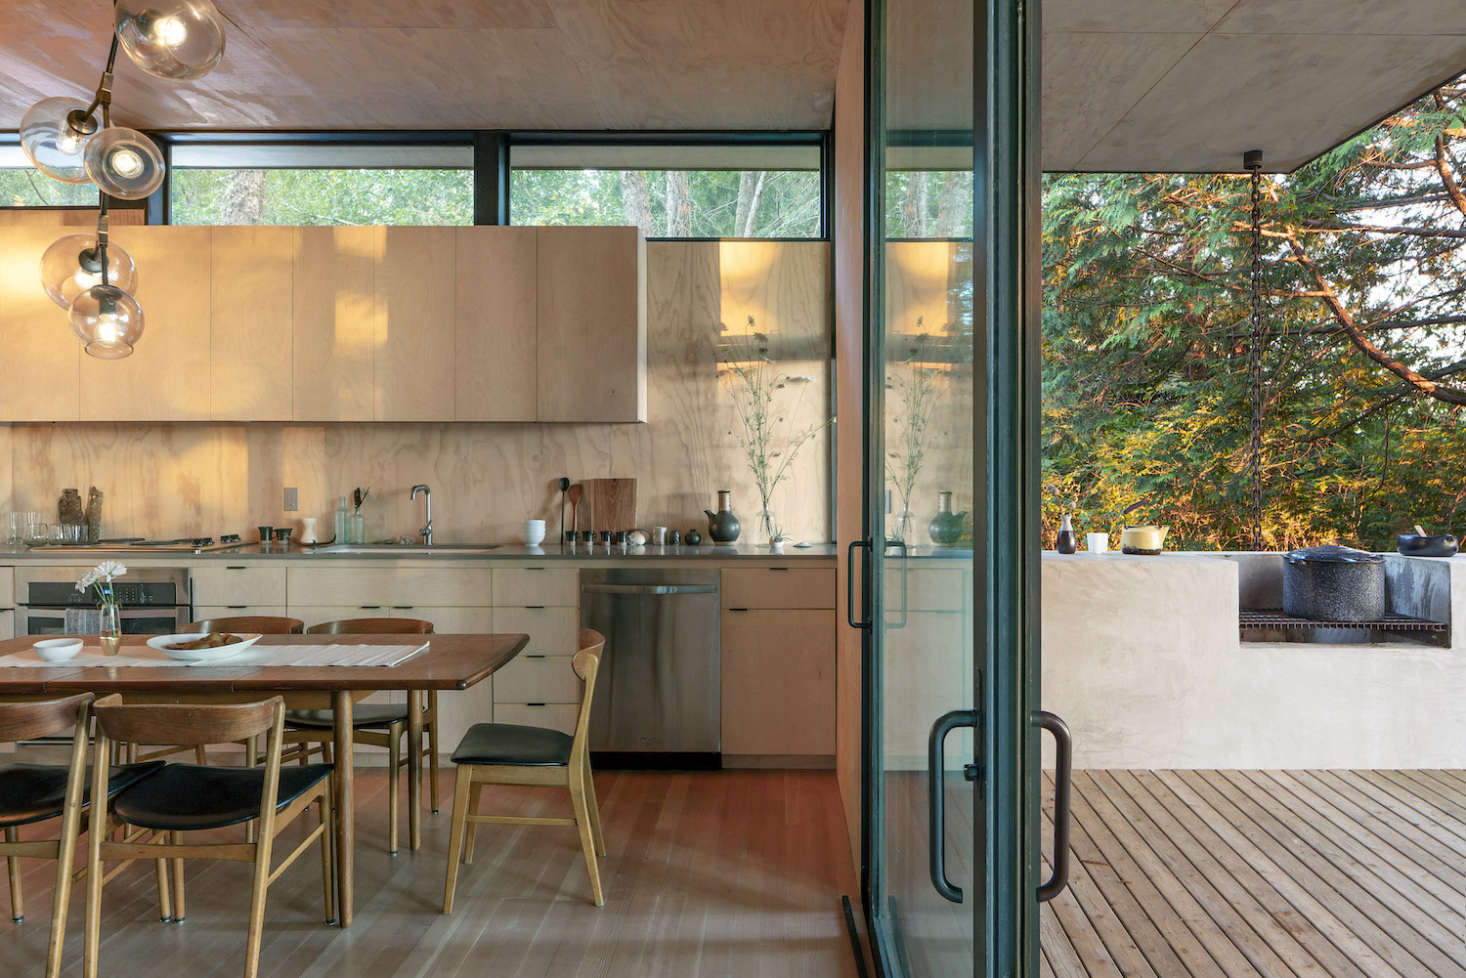 The concrete kitchen counter extends into an outdoor kitchen on the deck.